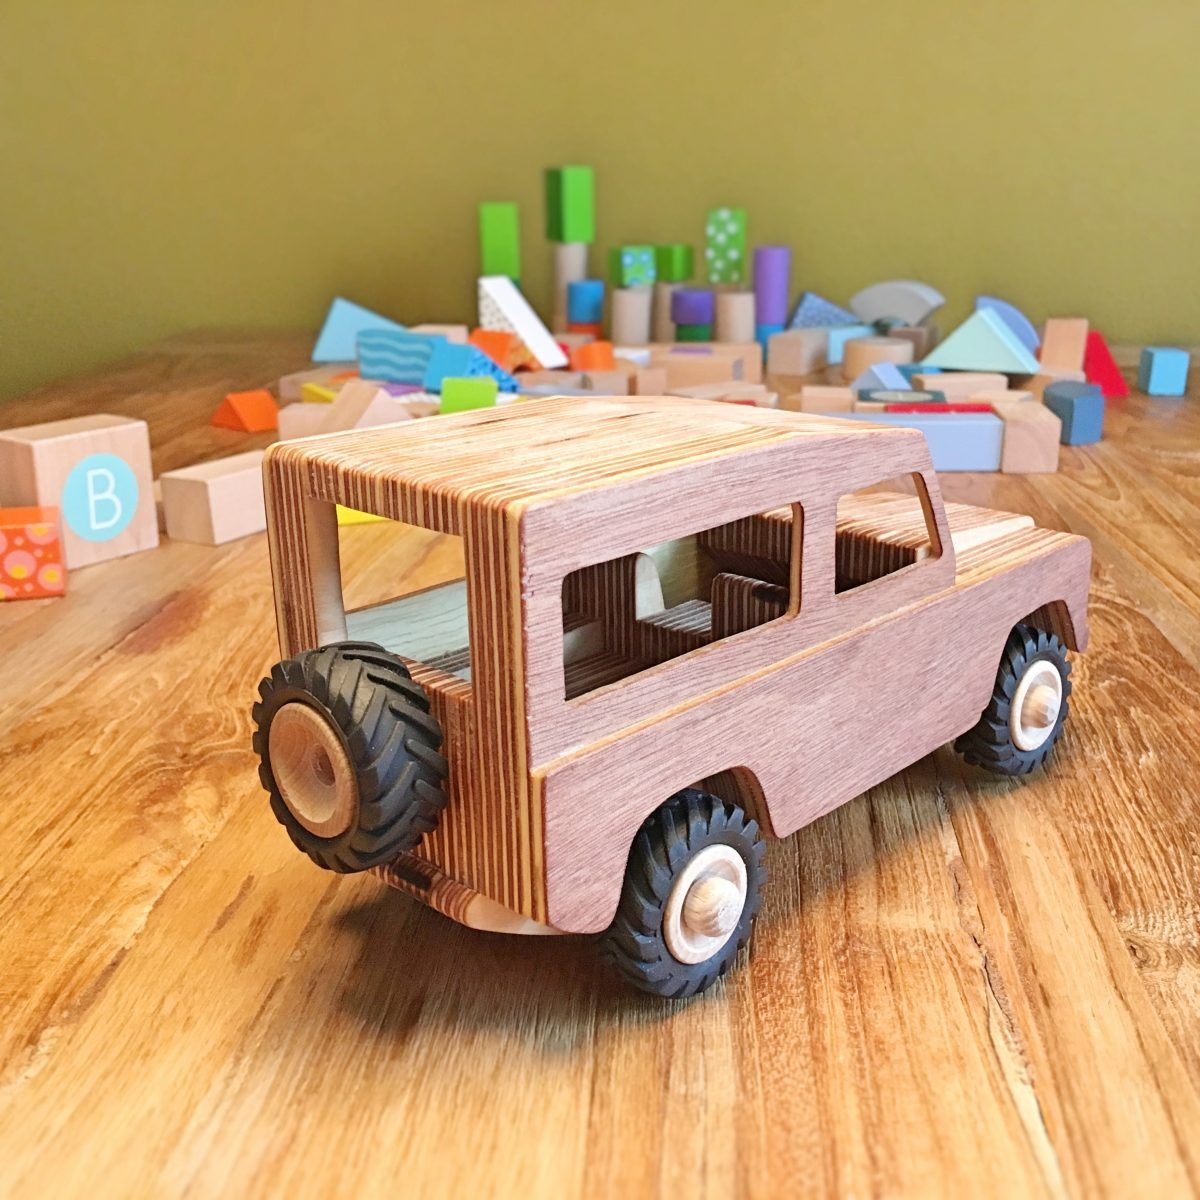 Wooden toys plans, Wooden toy cars